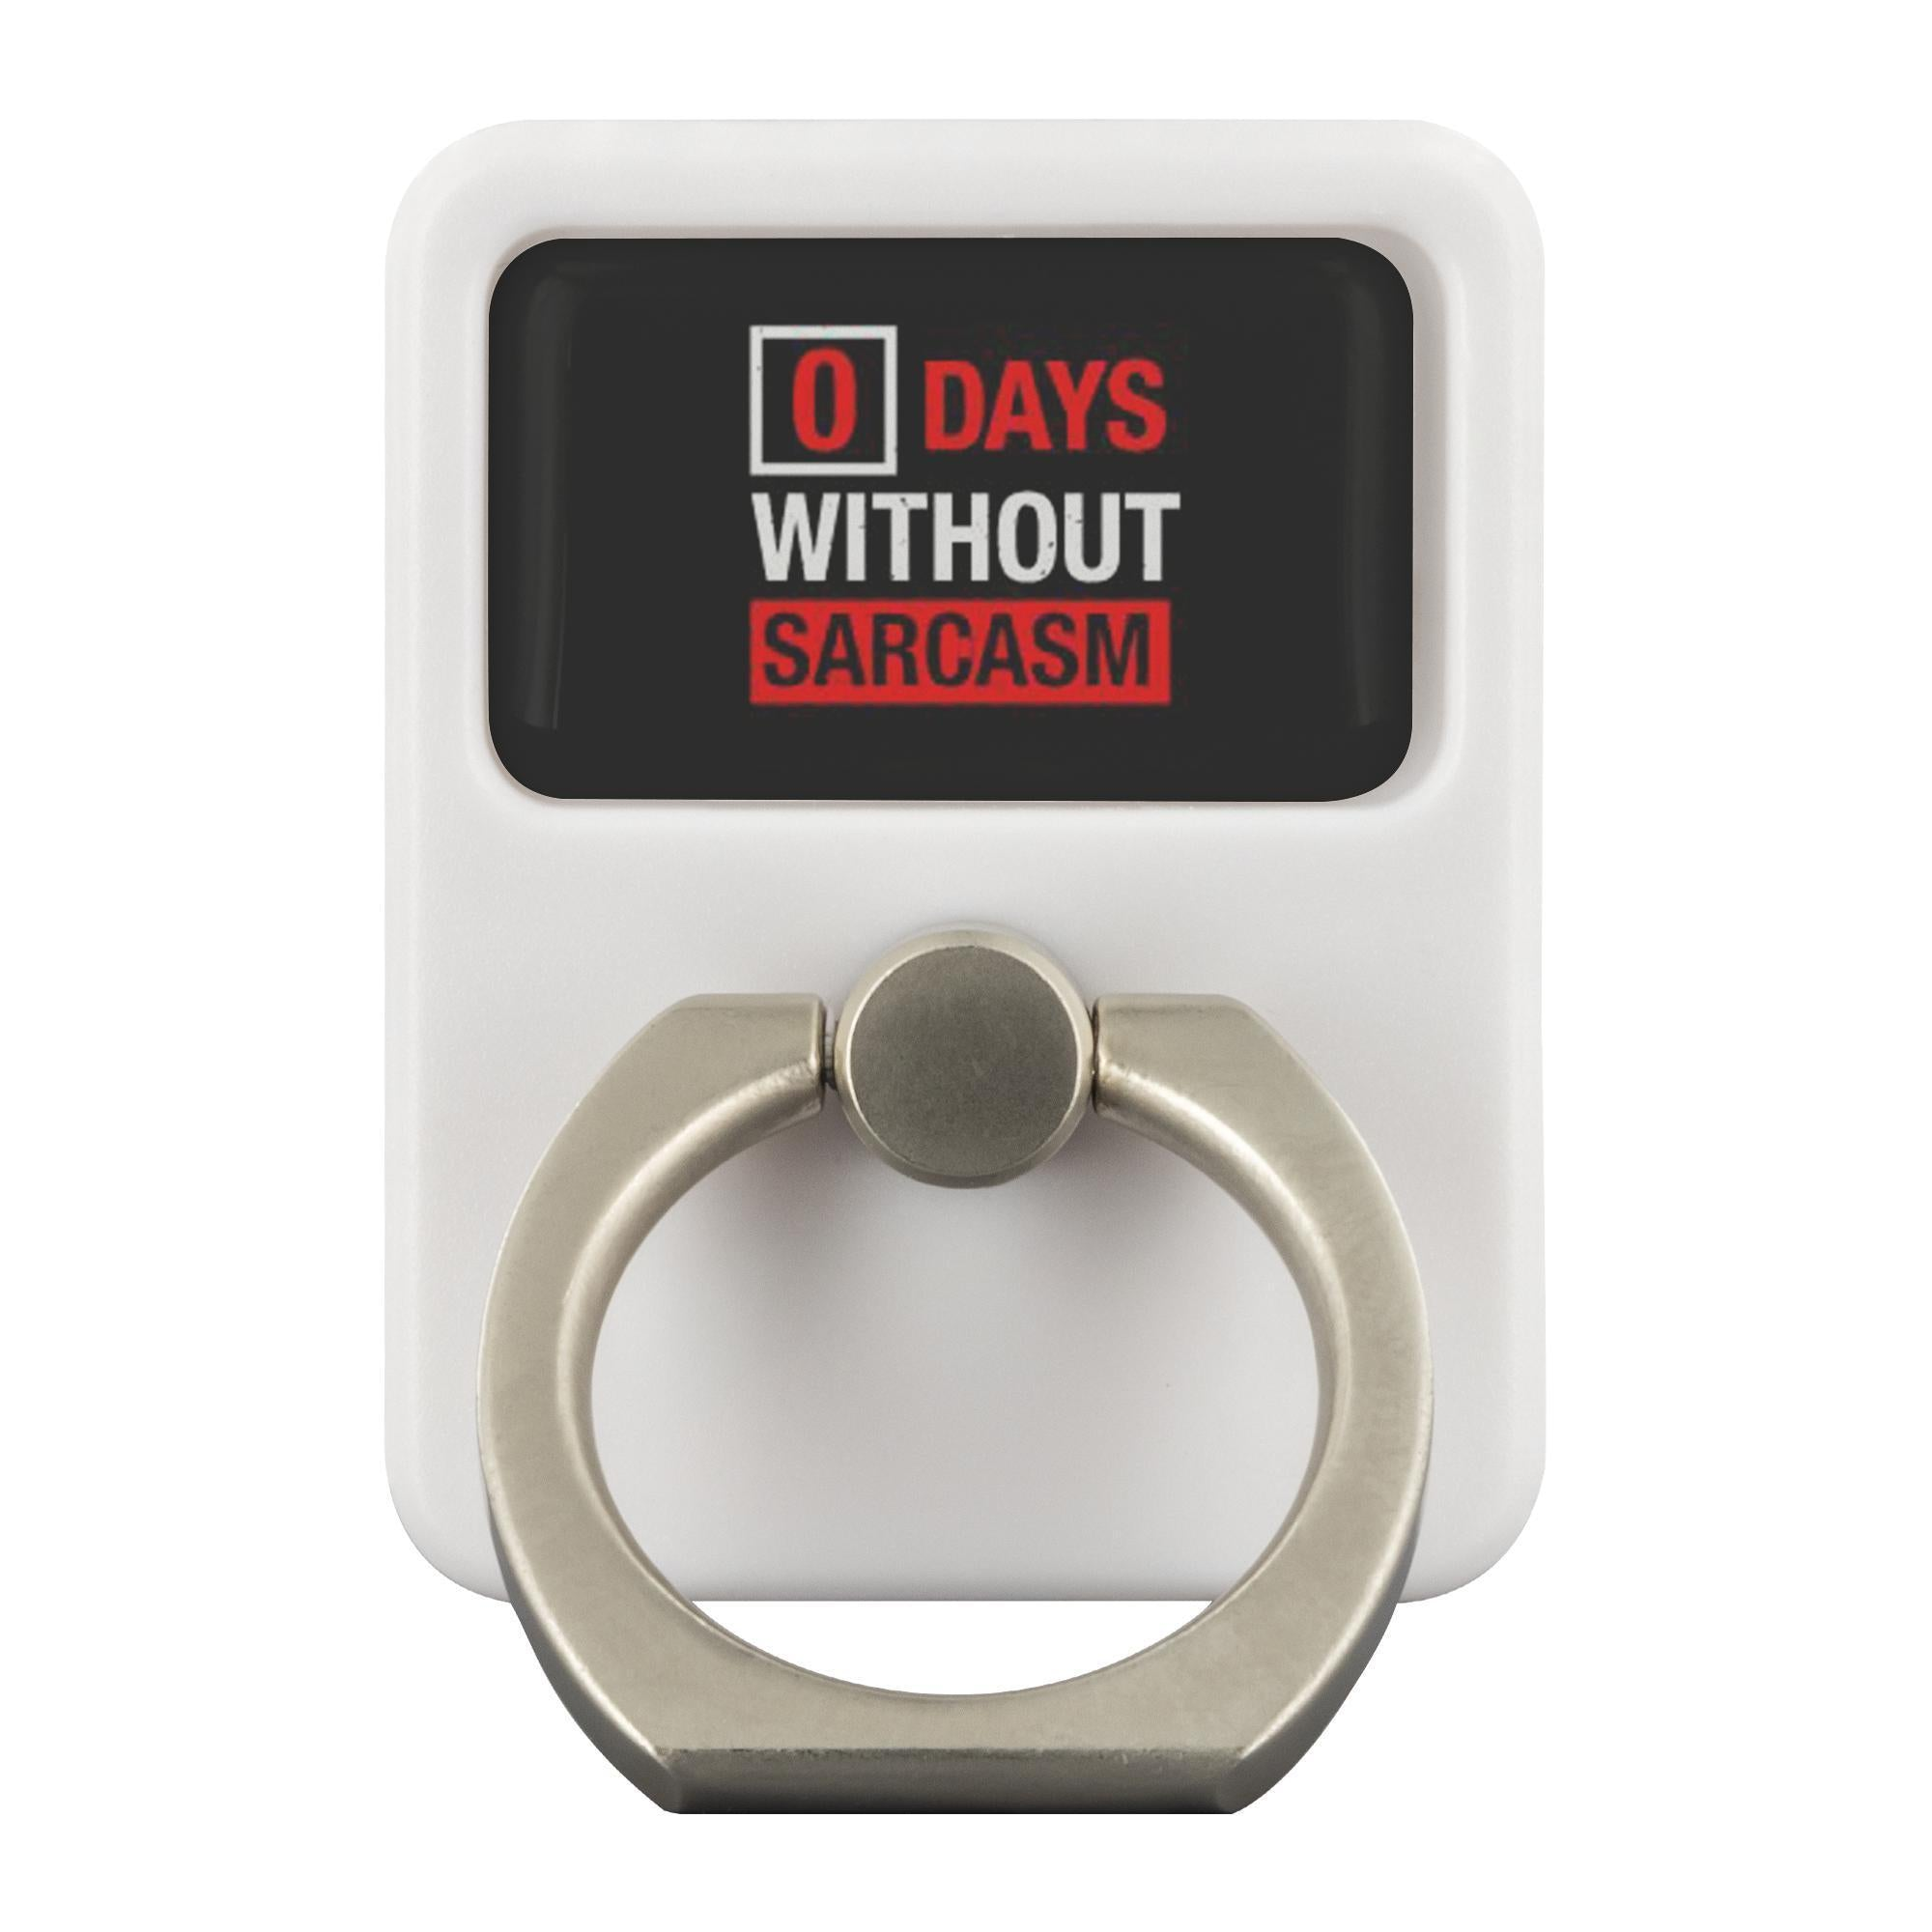 0 Days Without Sarcasm Funny Sarcastic Phone Ring Holder Cynical Kickstand Gift-Ringr - Multi-Tool Accessory-Ringr - Multi-Tool Accessory-JoyHip.Com